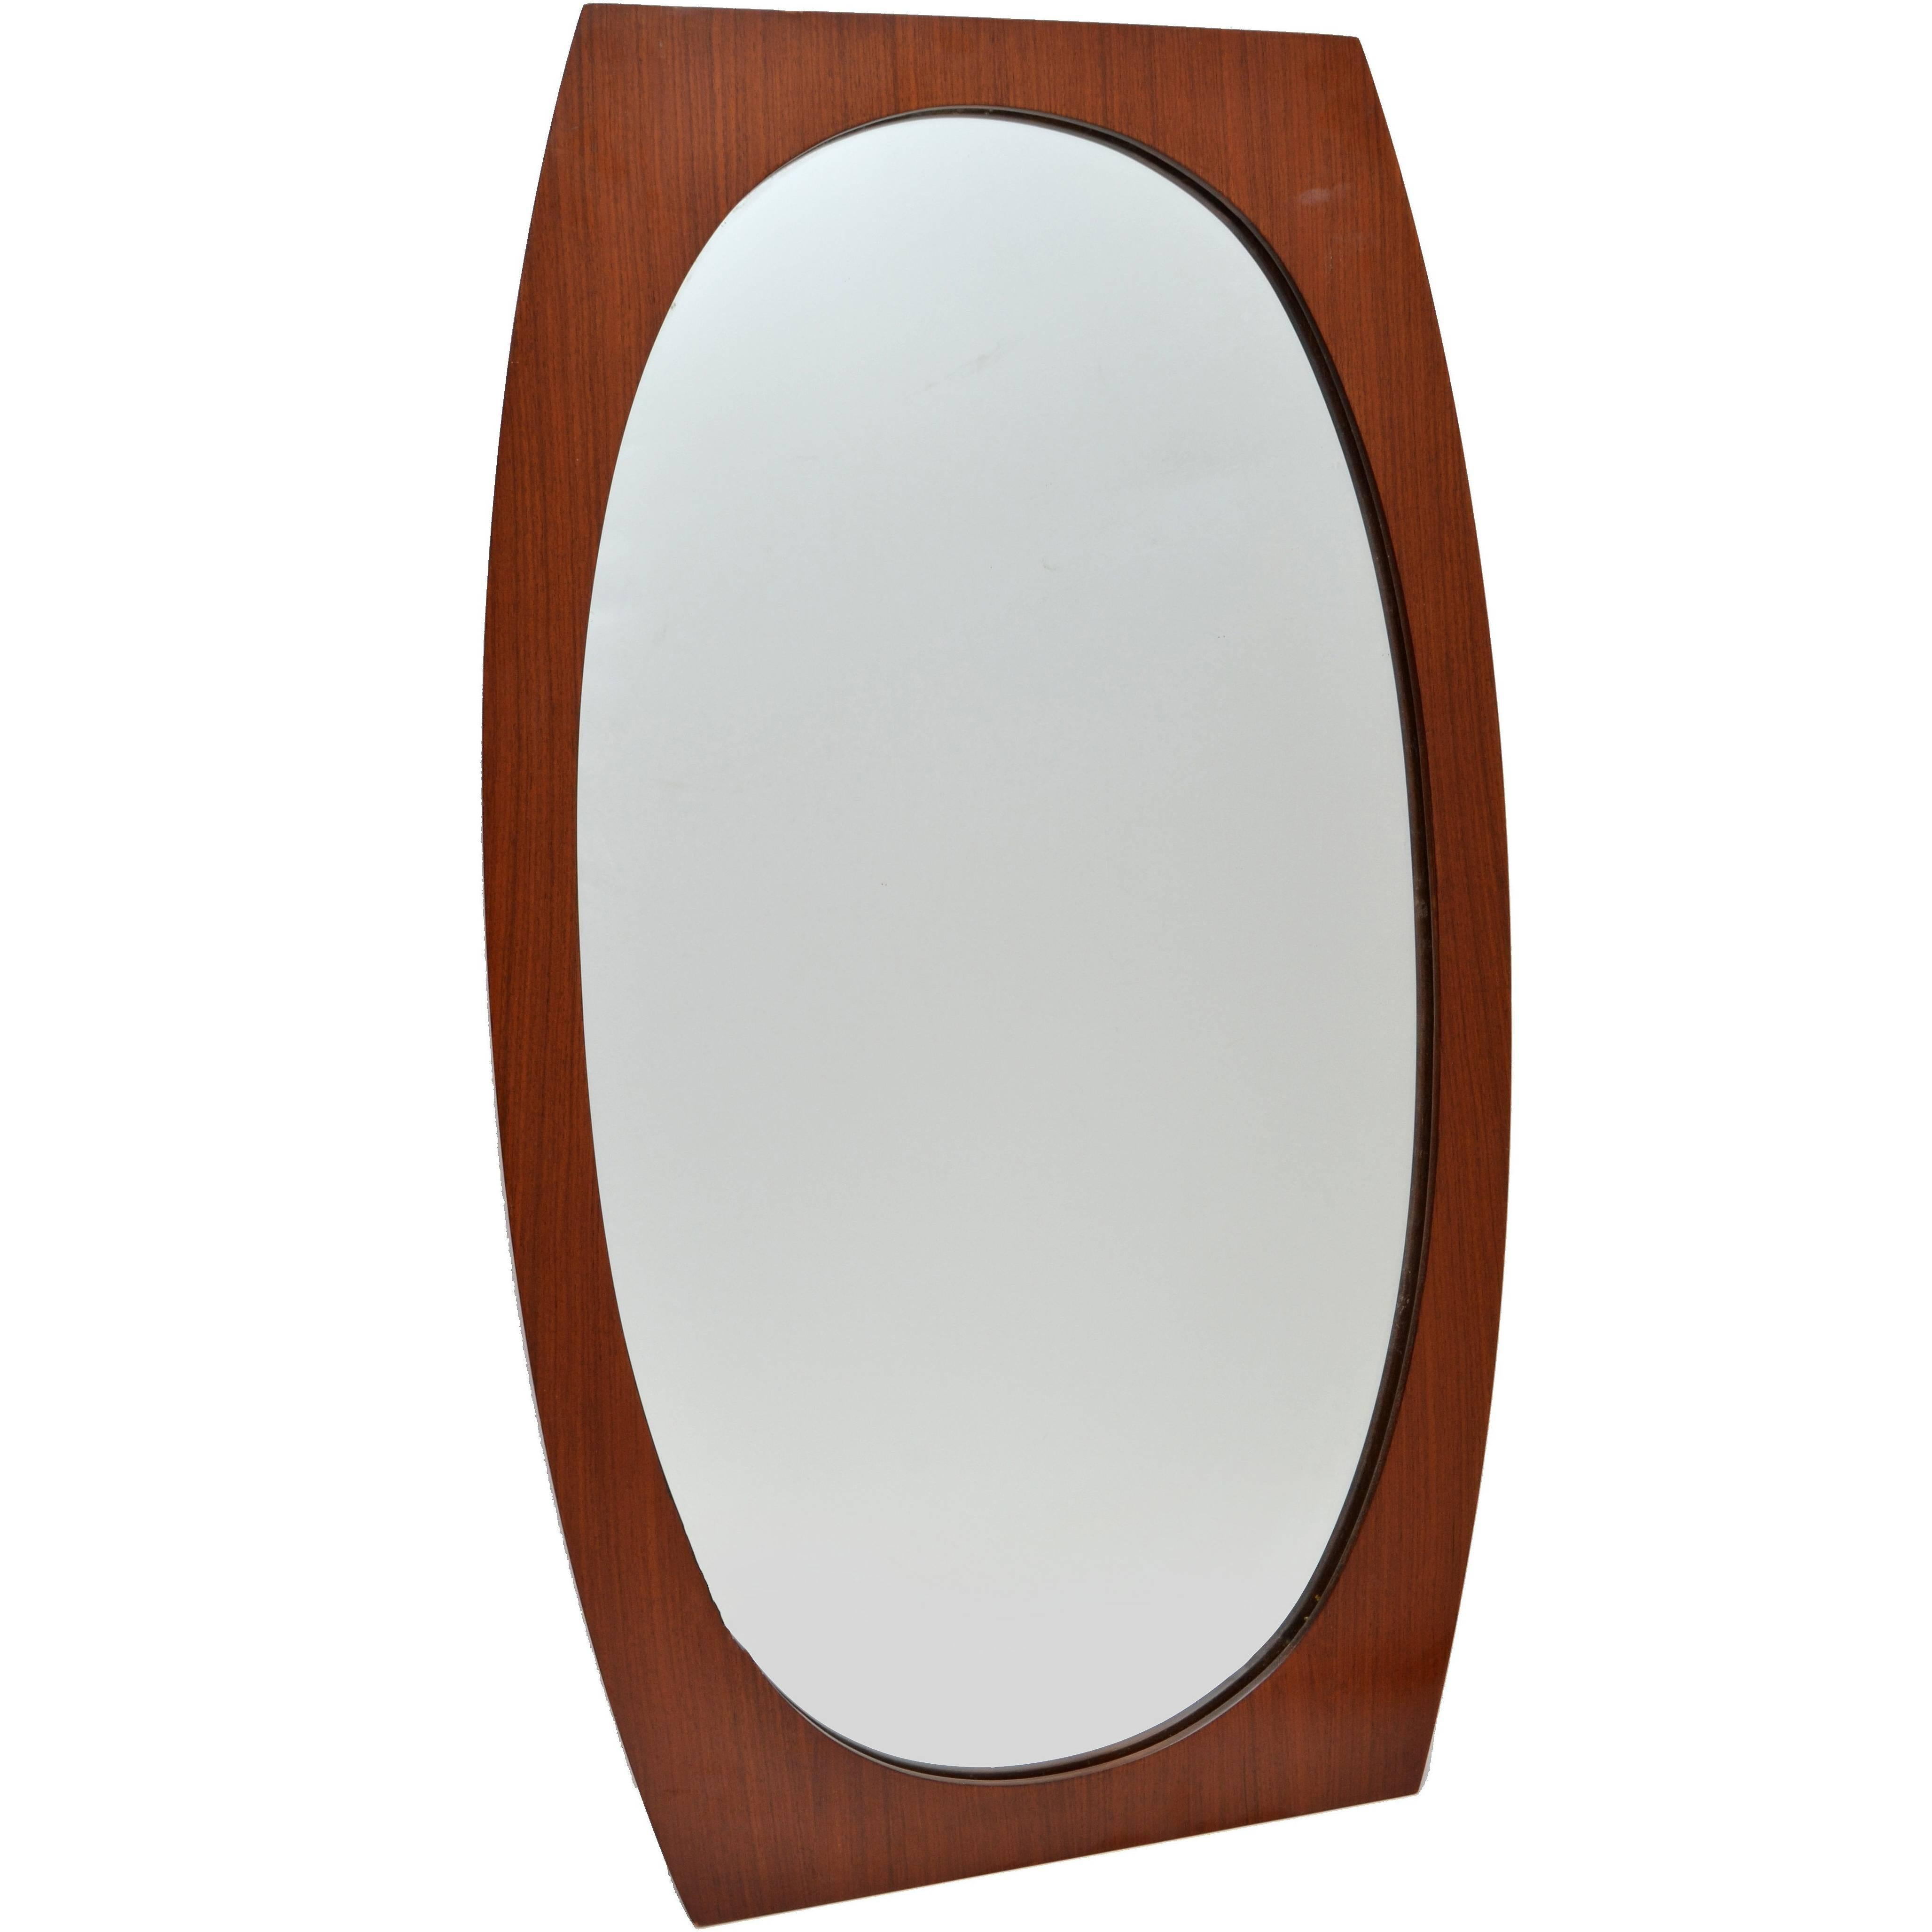 Oval Scandinavian Modern Walnut Wall Mirror